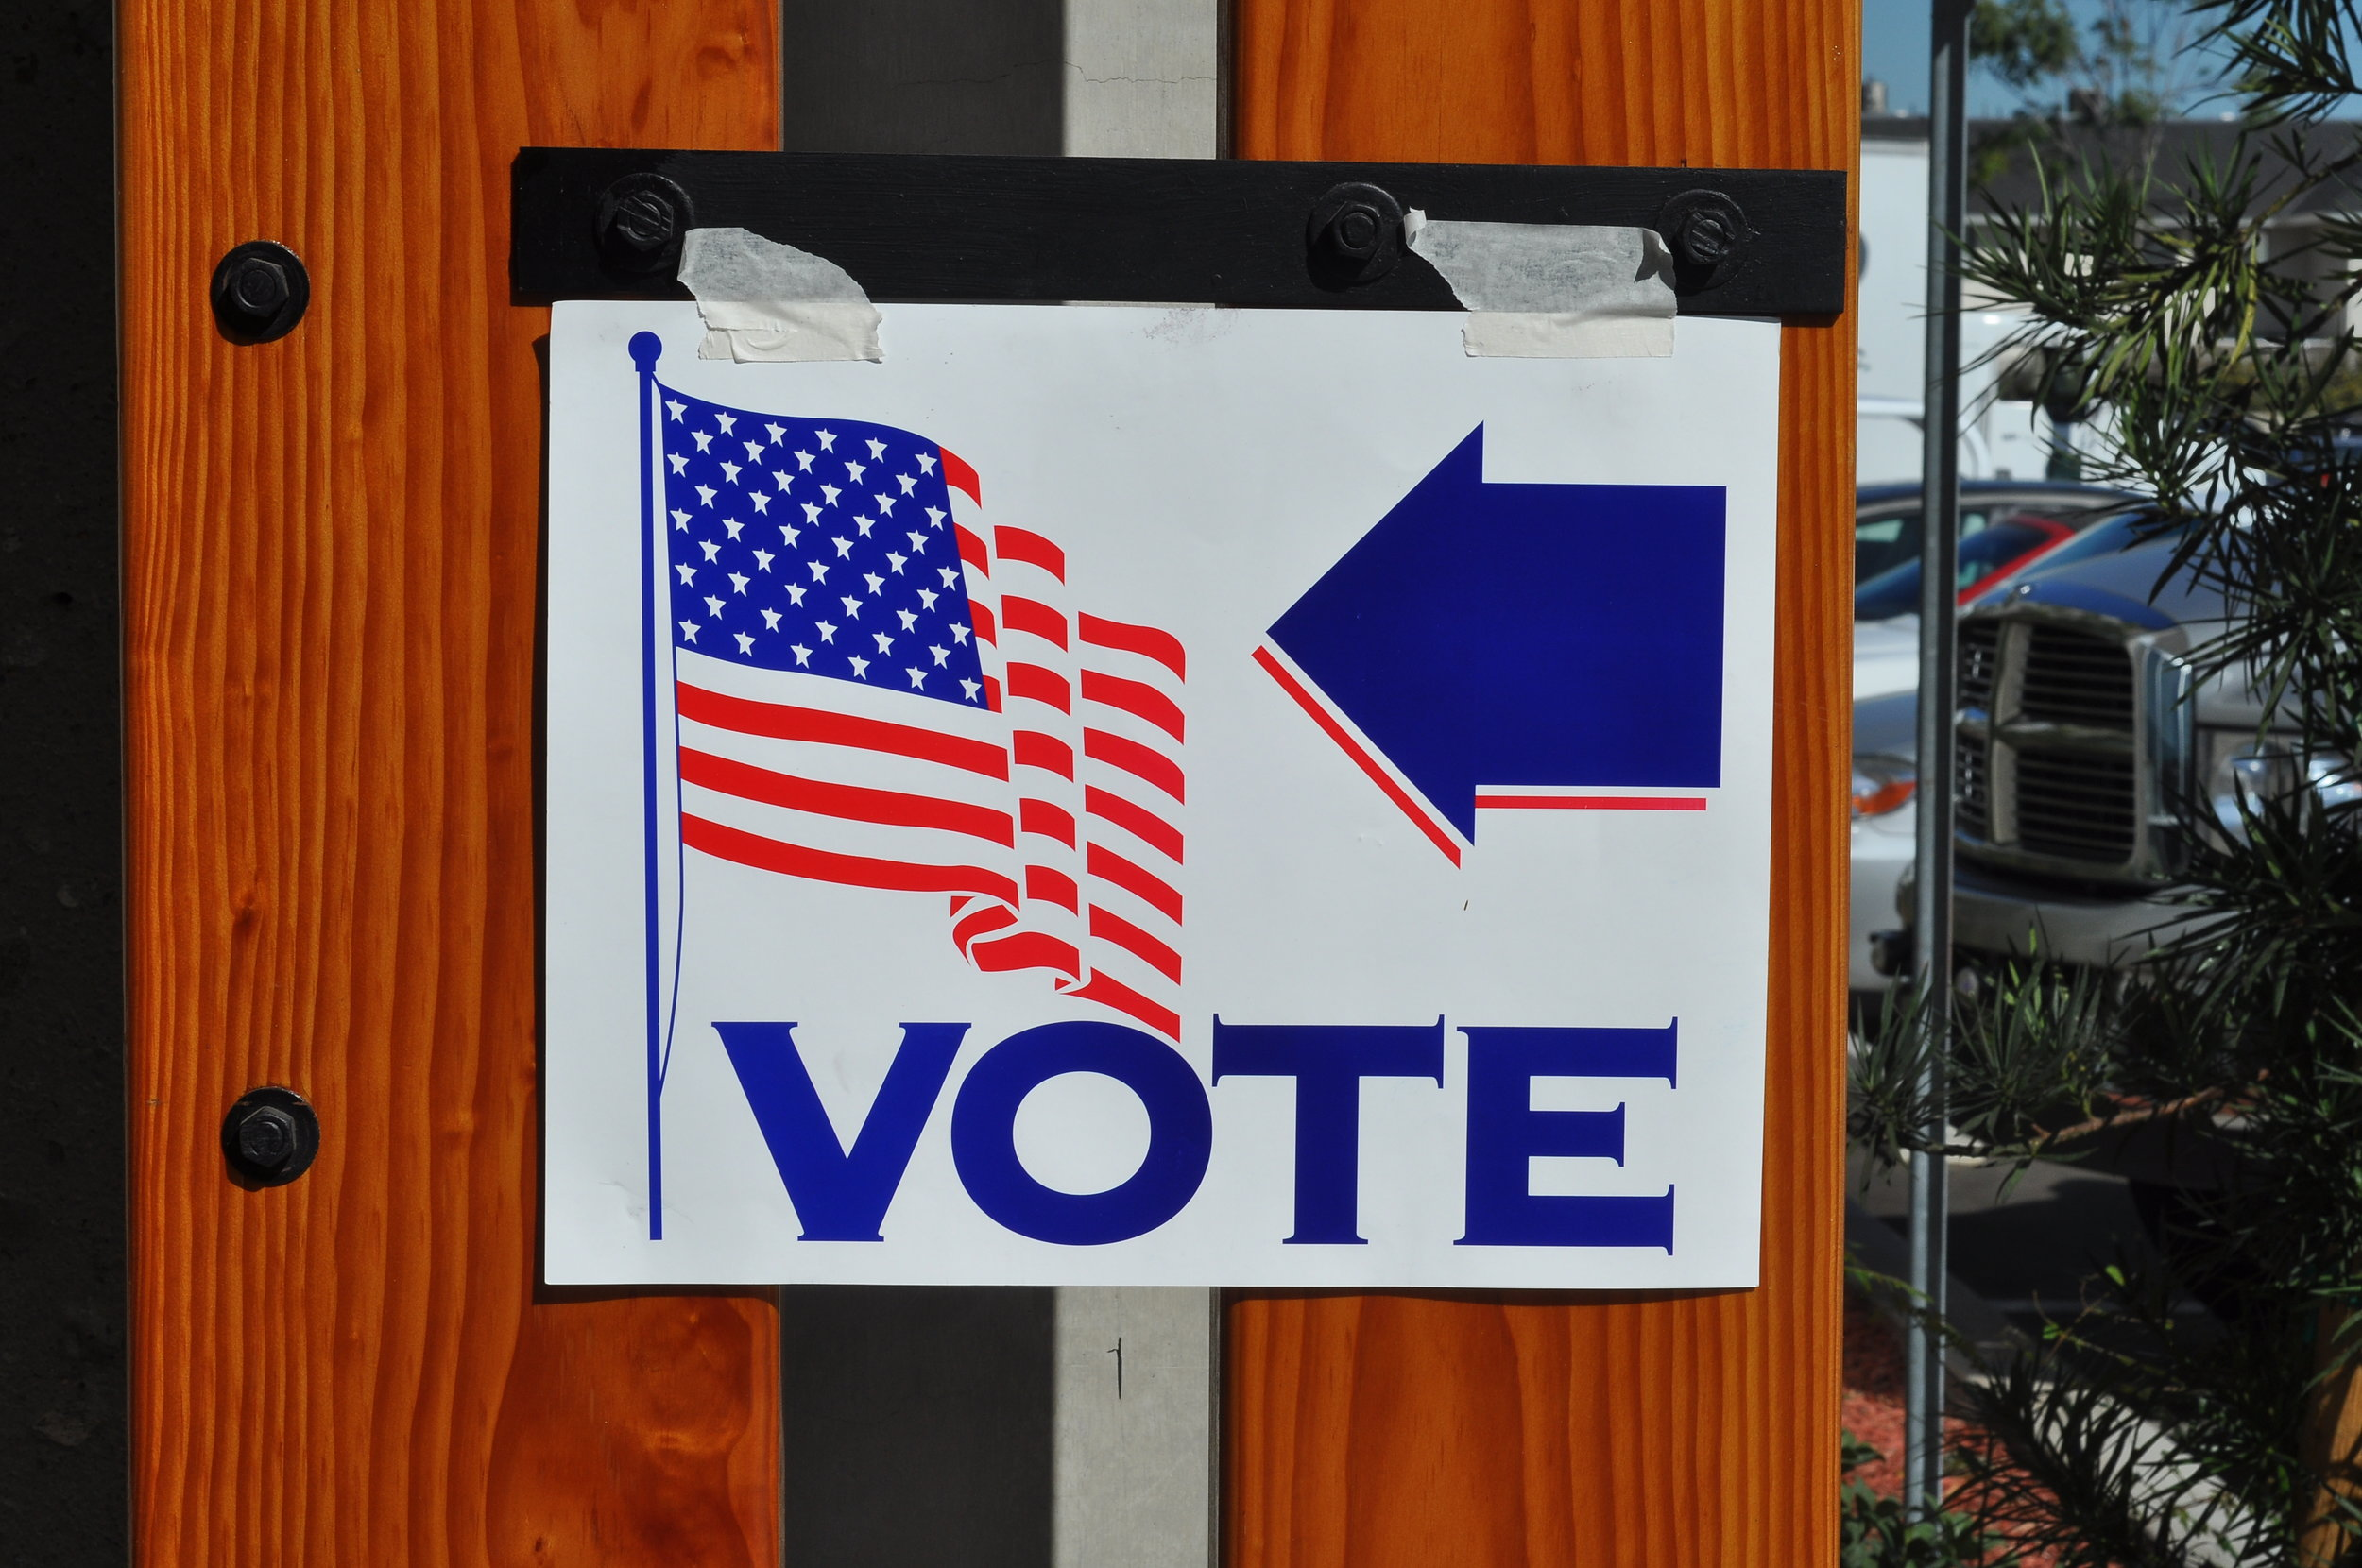 Election reforms, including making Election Day a federal holiday and abolishing the electoral college, divide Congress along partisan lines. (Wikimedia Commons)